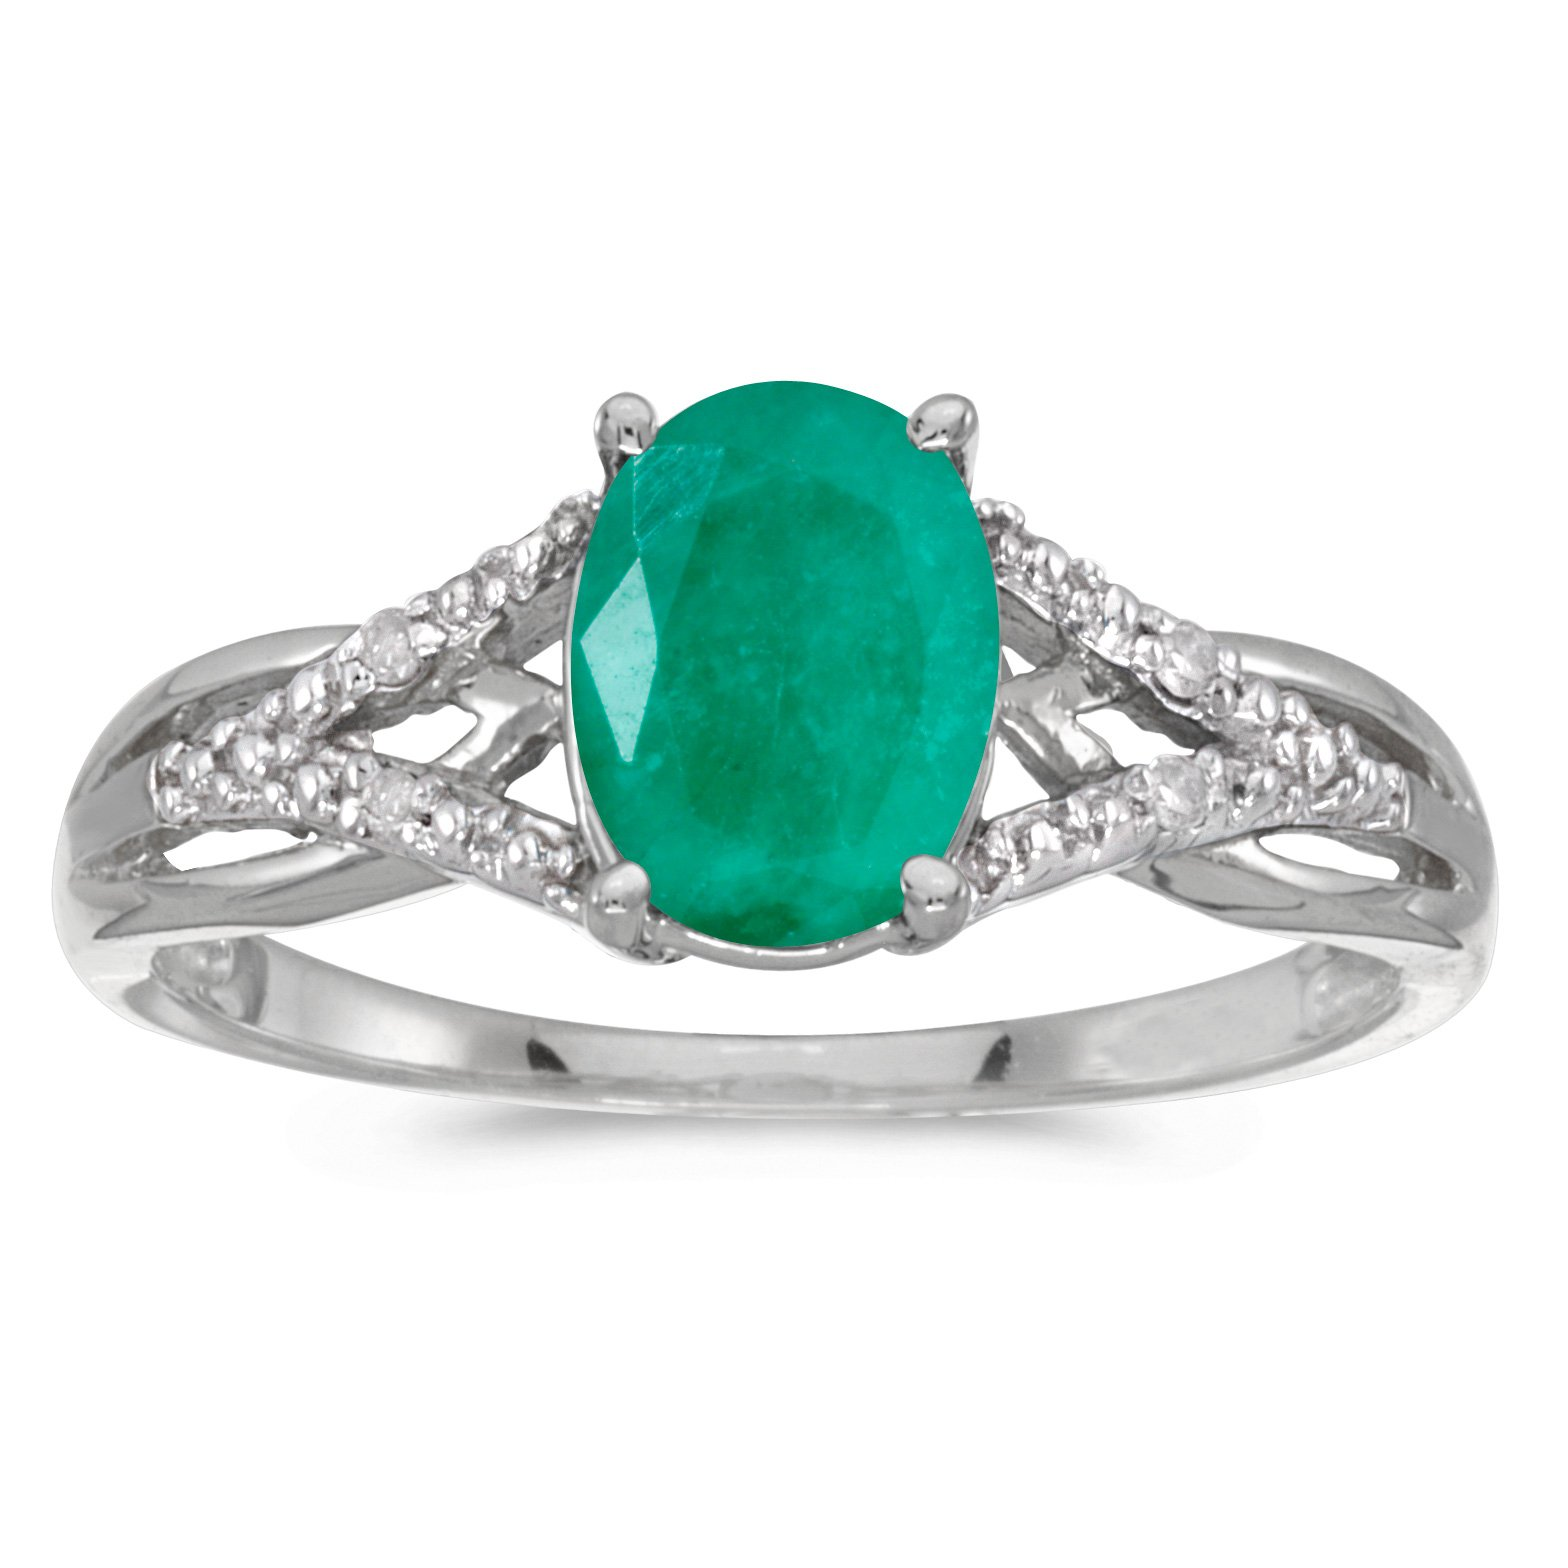 10k White Gold Oval Emerald And Diamond Ring (Size 6) by Direct-Jewelry